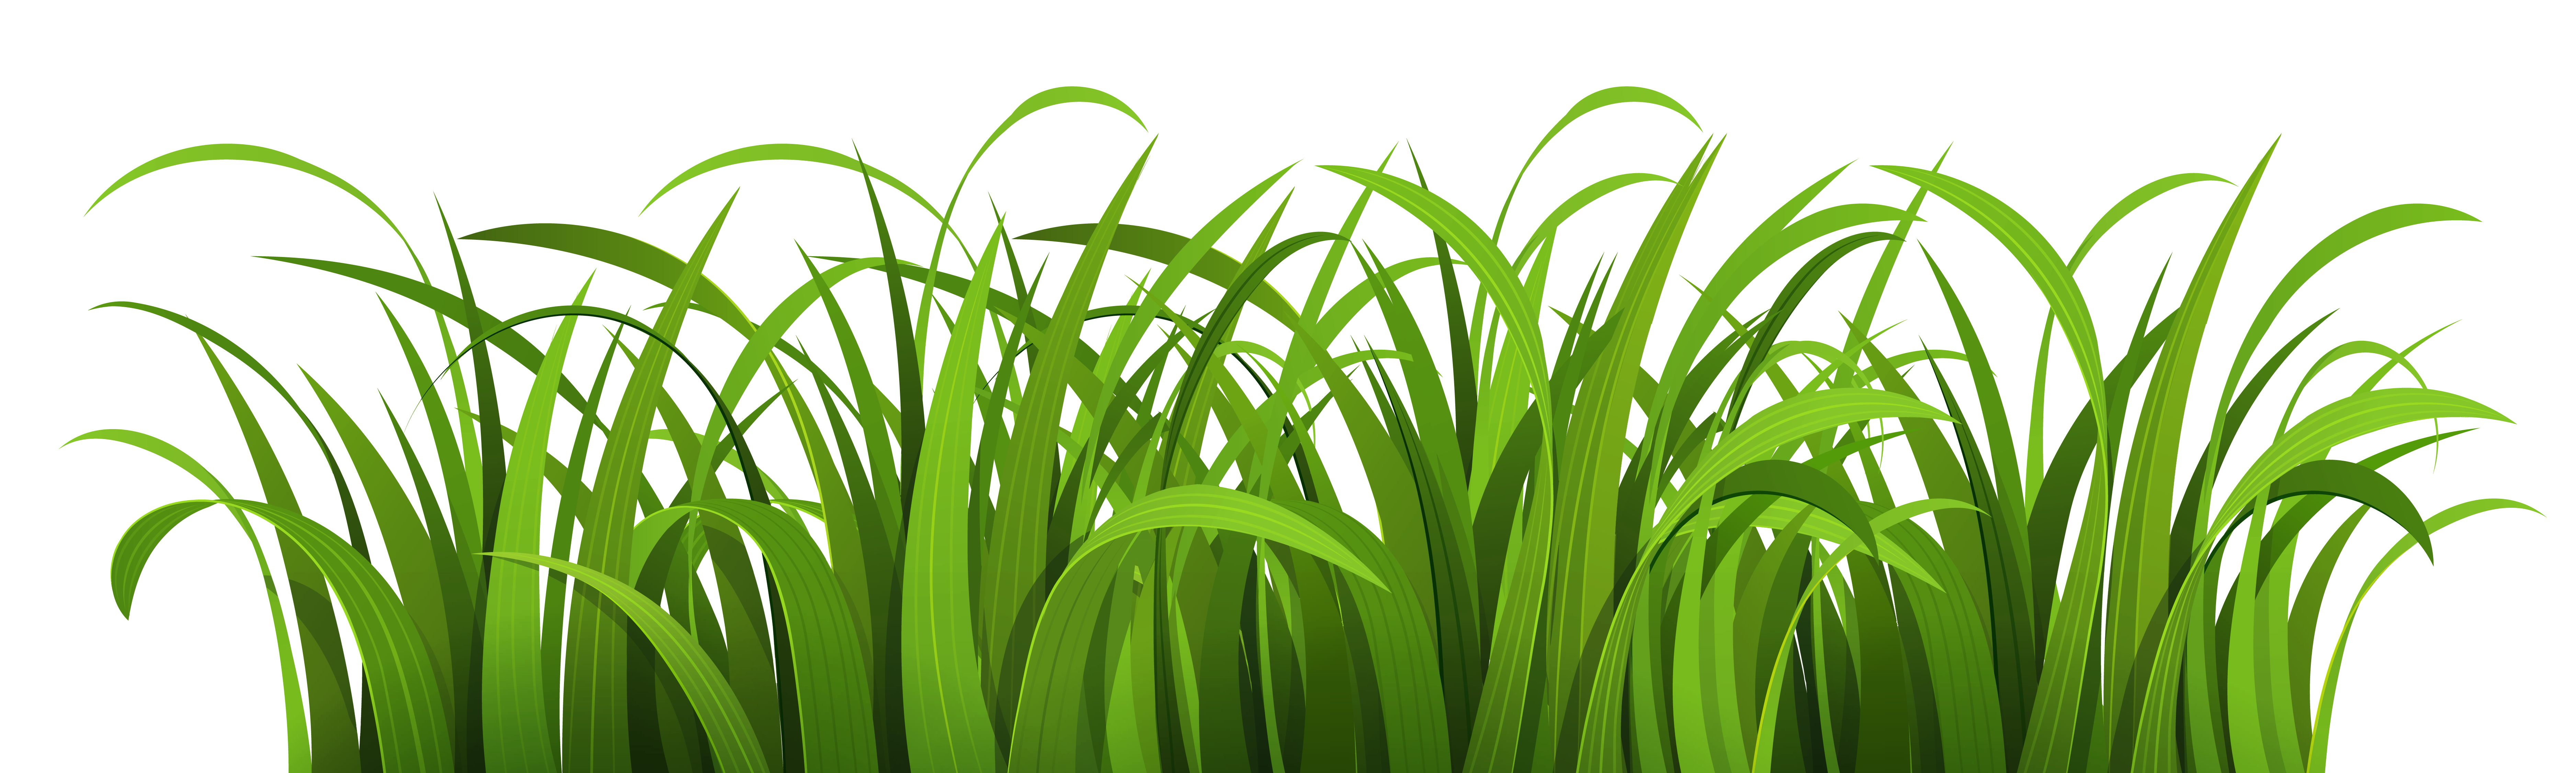 Png image purepng free. Nature clipart flower